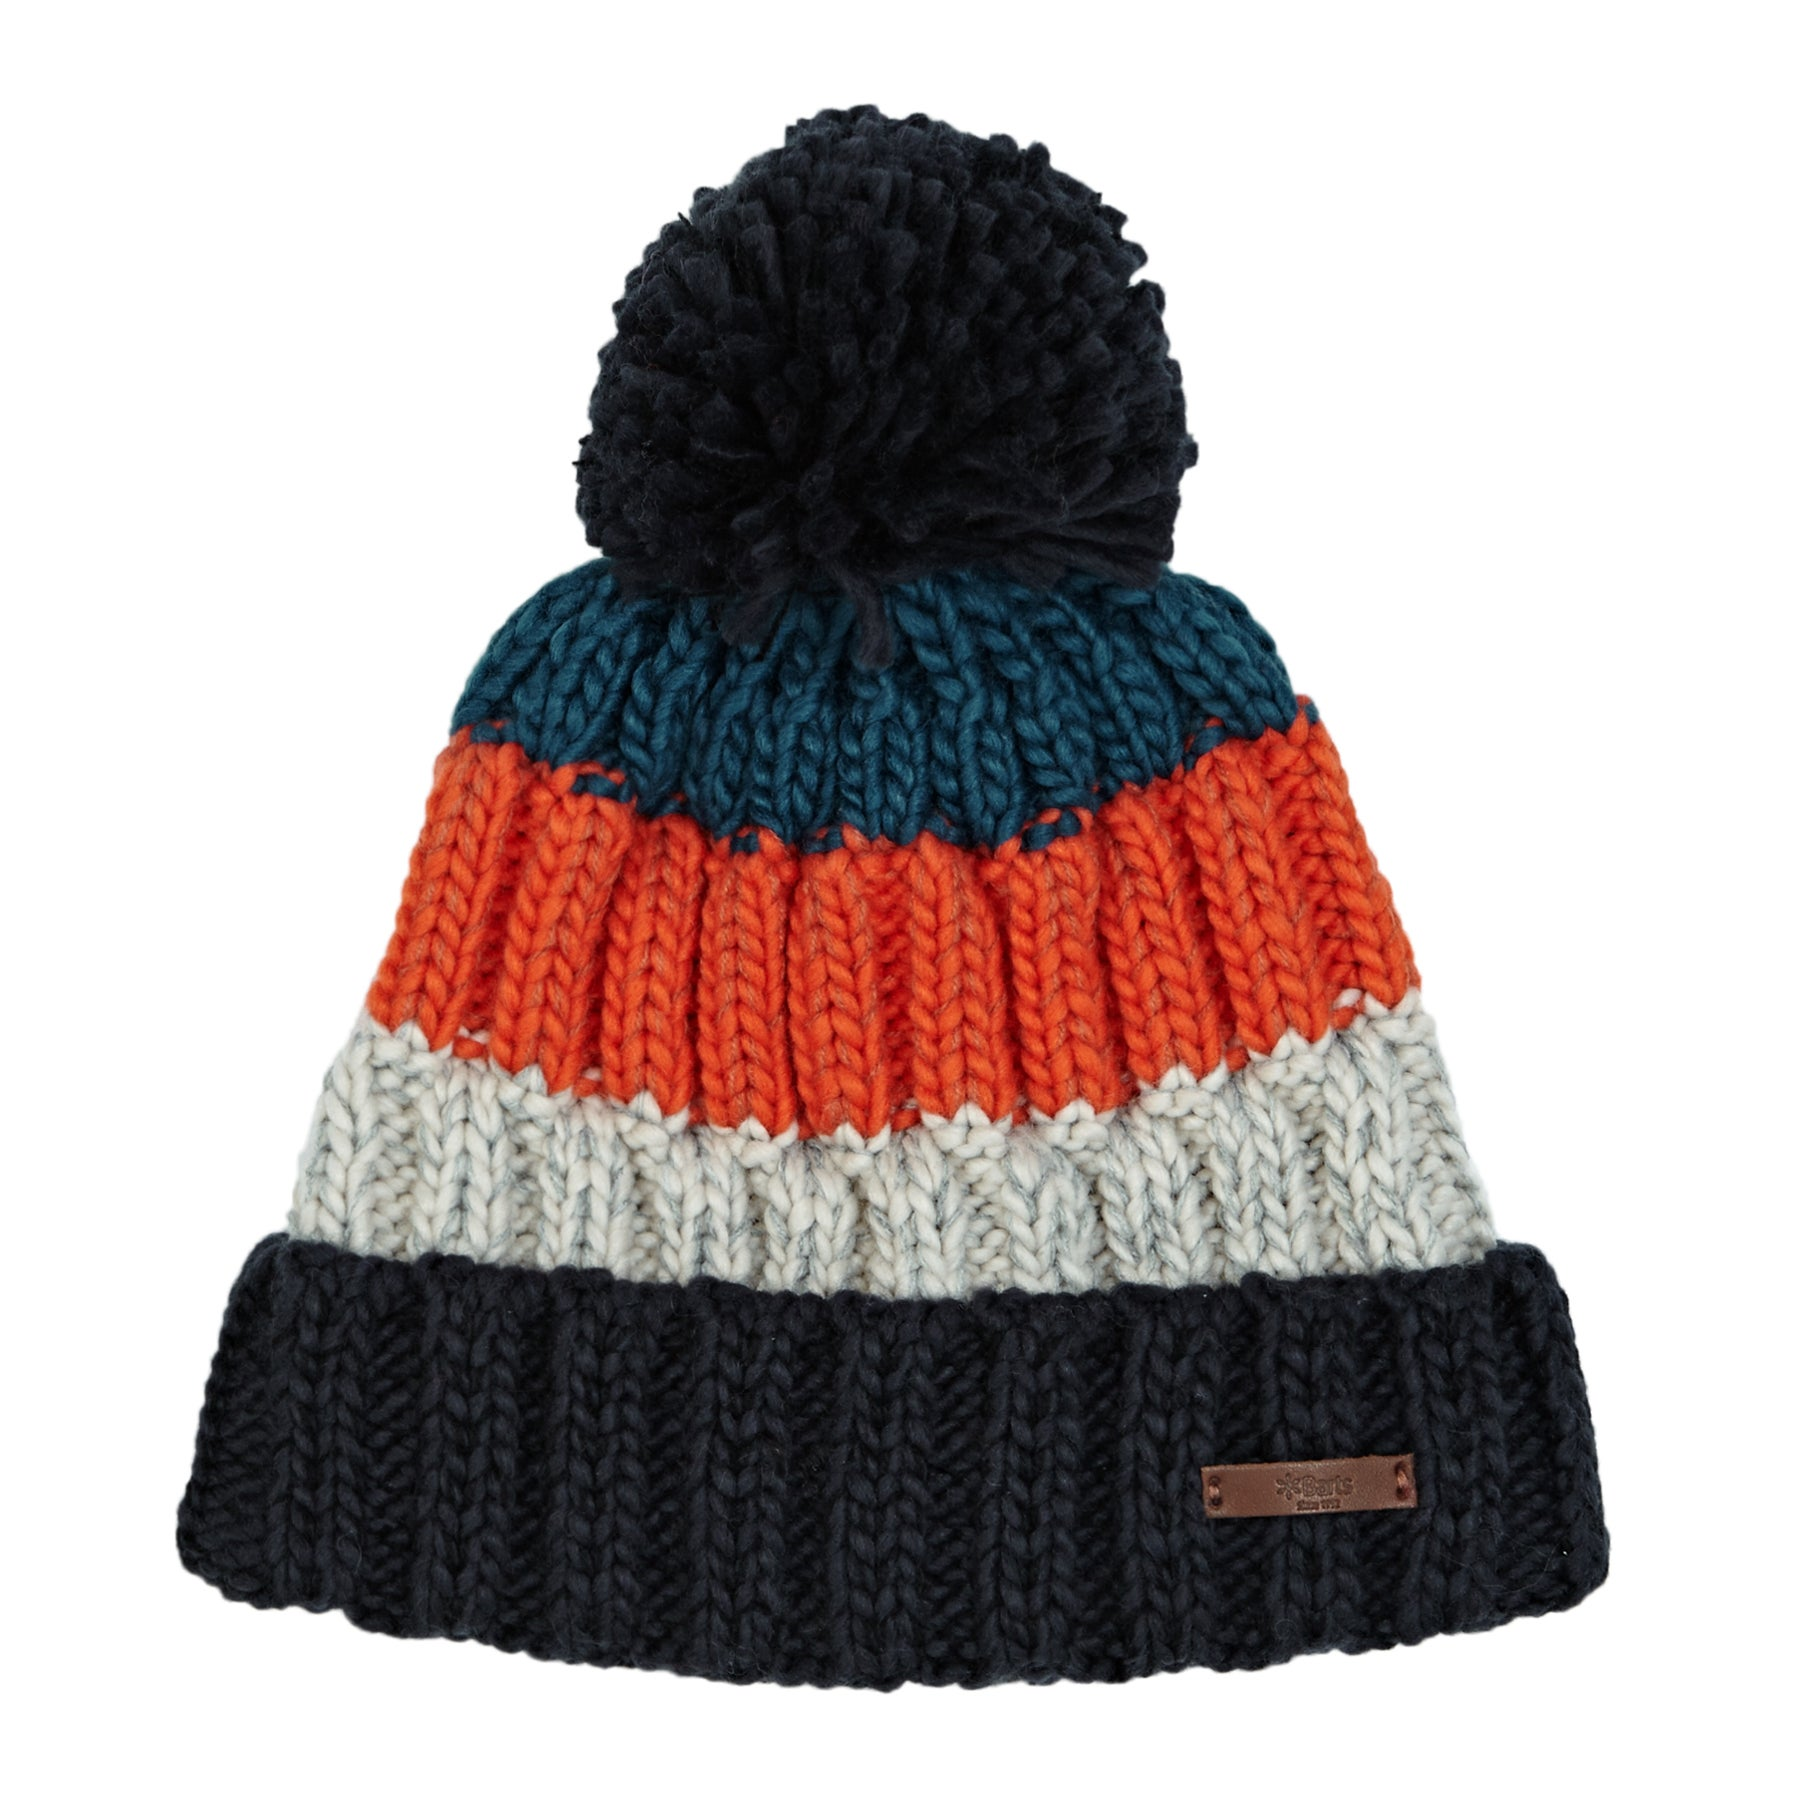 4415824fa55 Barts Wilhelm Beanie available from Surfdome